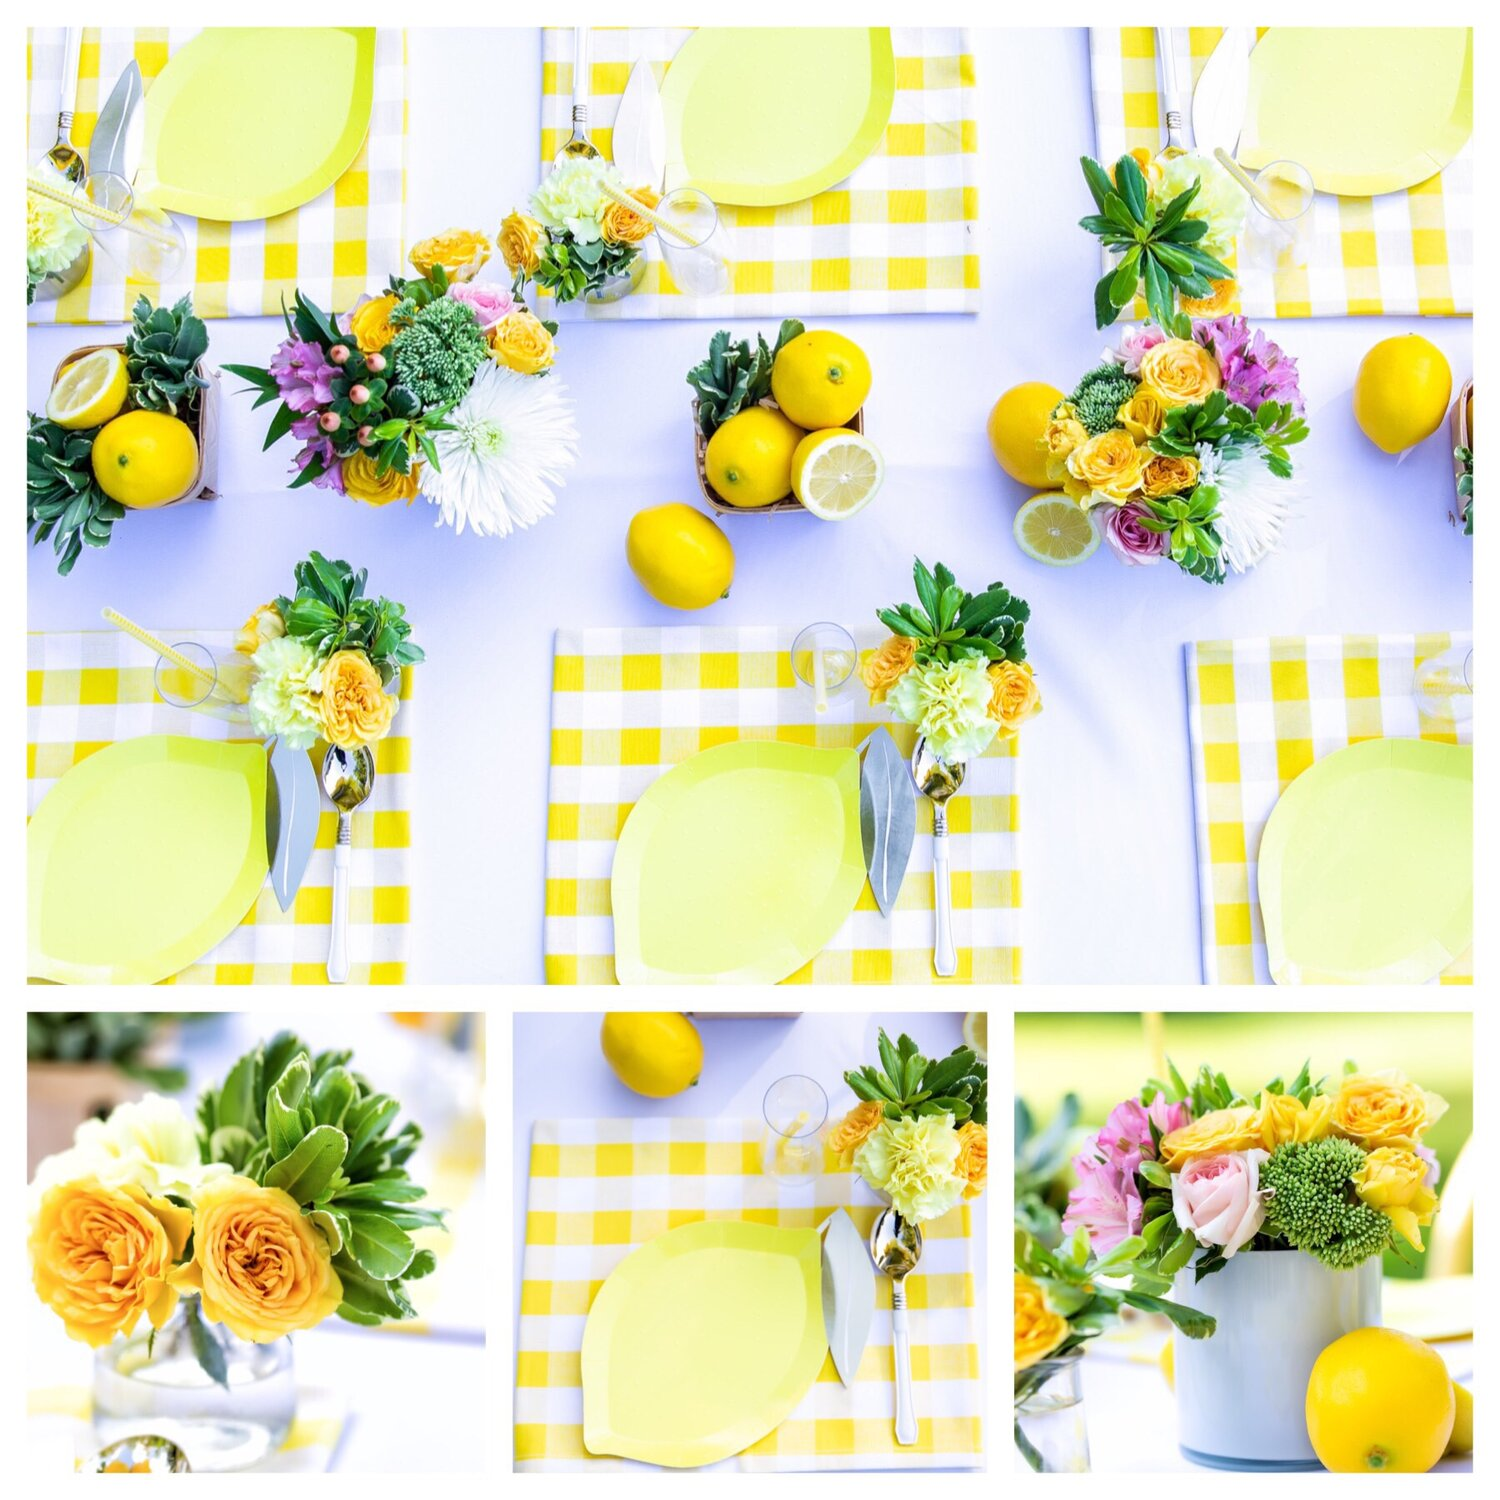 V styled each place setting with a yellow gingham cloth napkin as a place mat, as is her signature design element for kid's' tablescapes only one piece of cutlery was used.